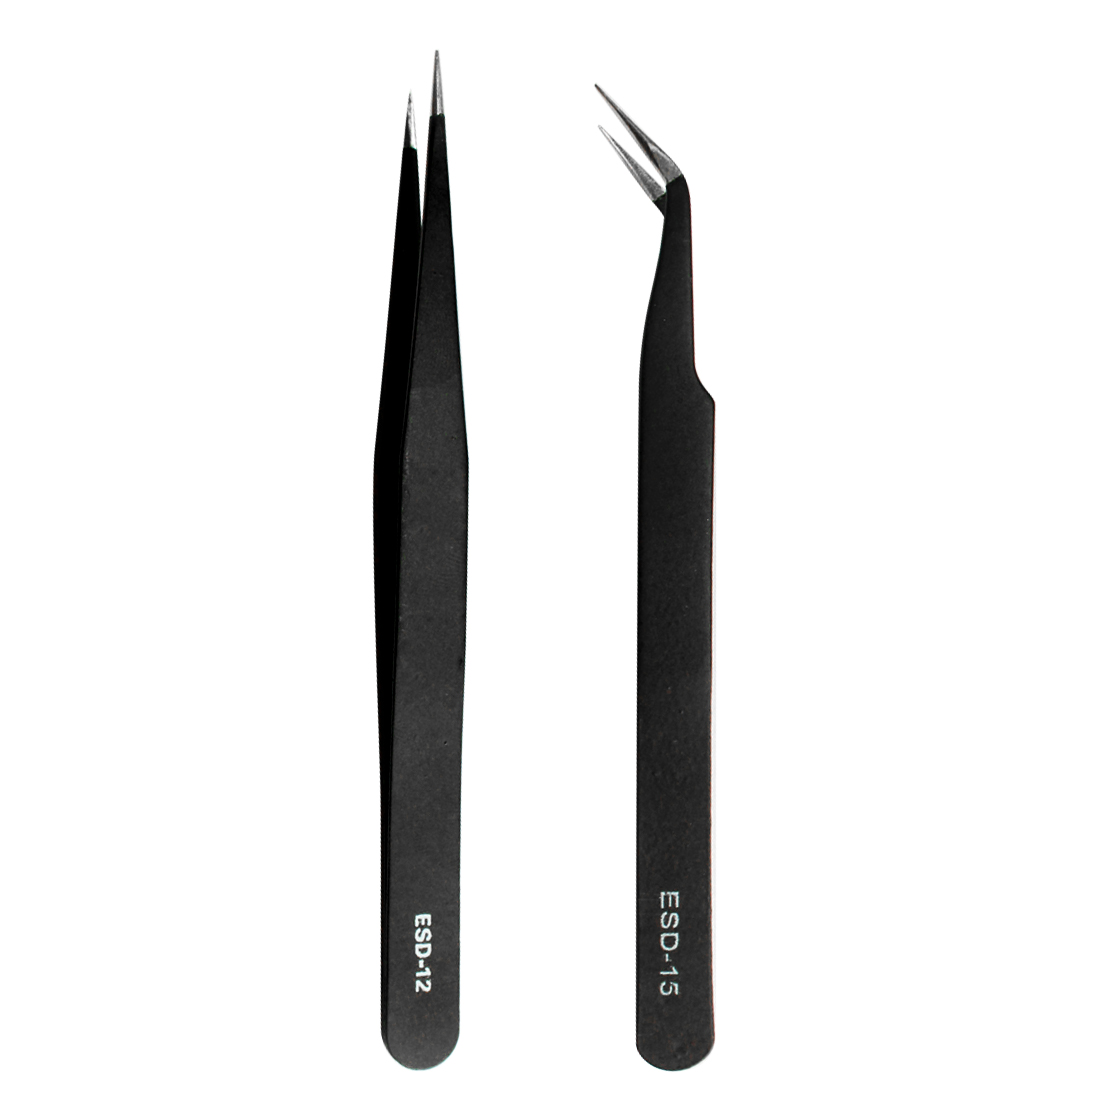 Stainless Steel Precision Tweezers Set Anti-static Tweezers Repair Tool Soldering Station Welding Assist ESD-12 ESD-15